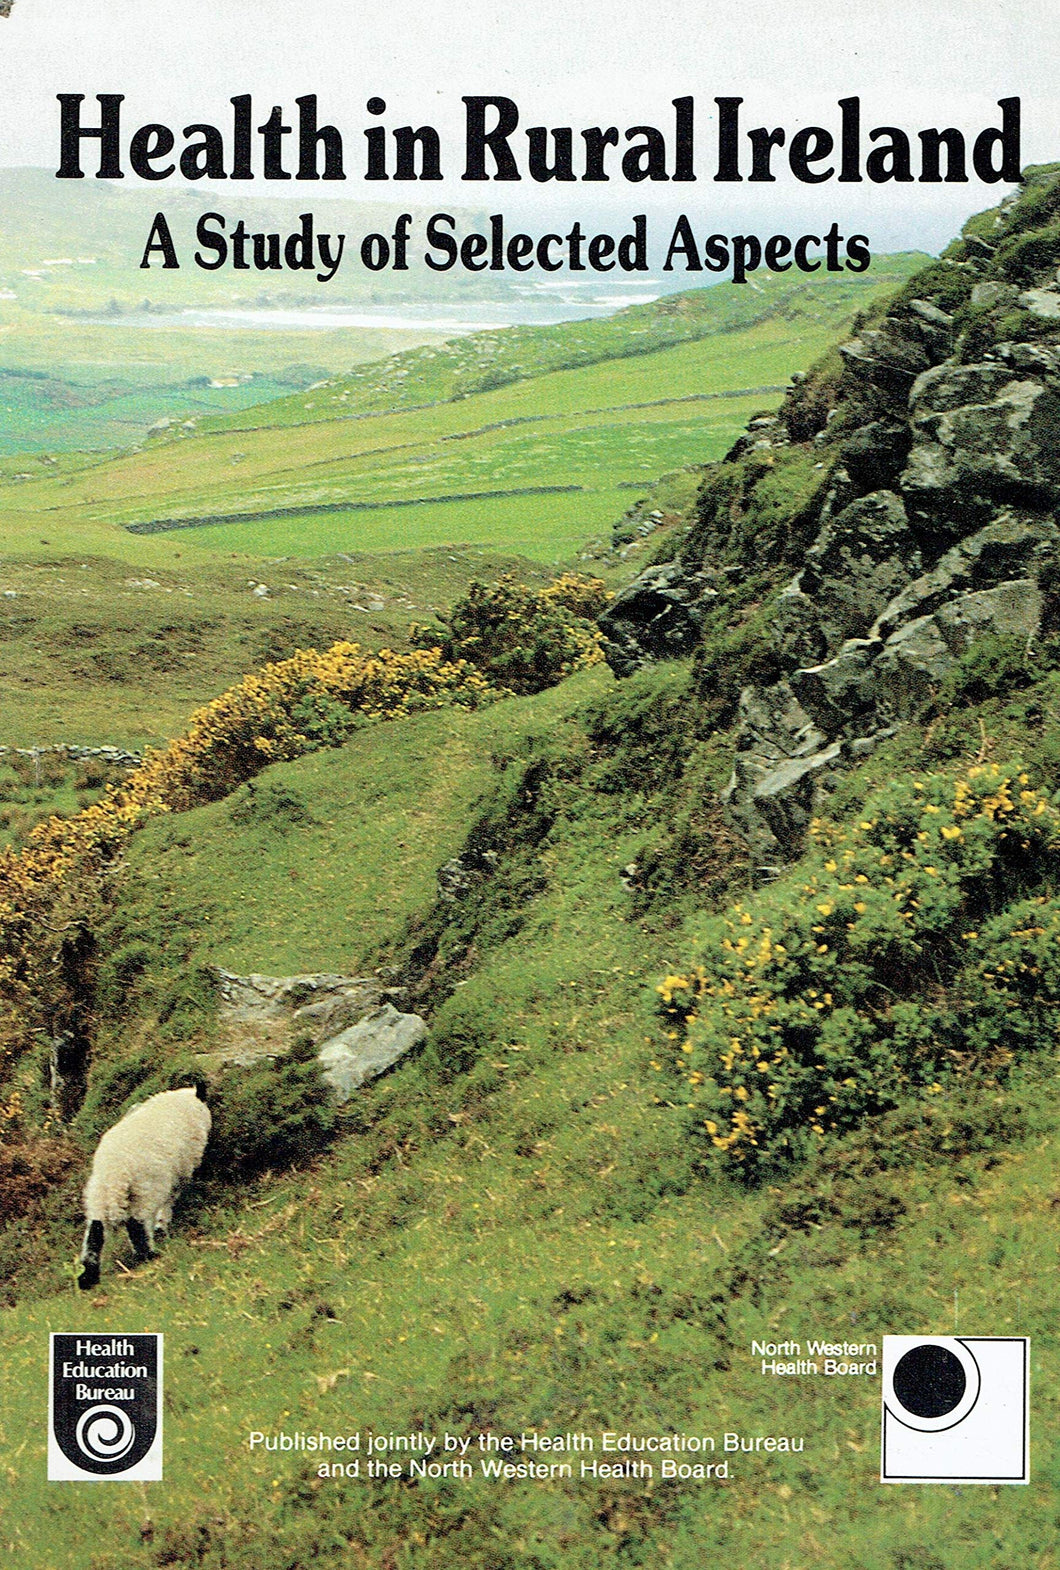 Health in rural Ireland: A study of selected aspects